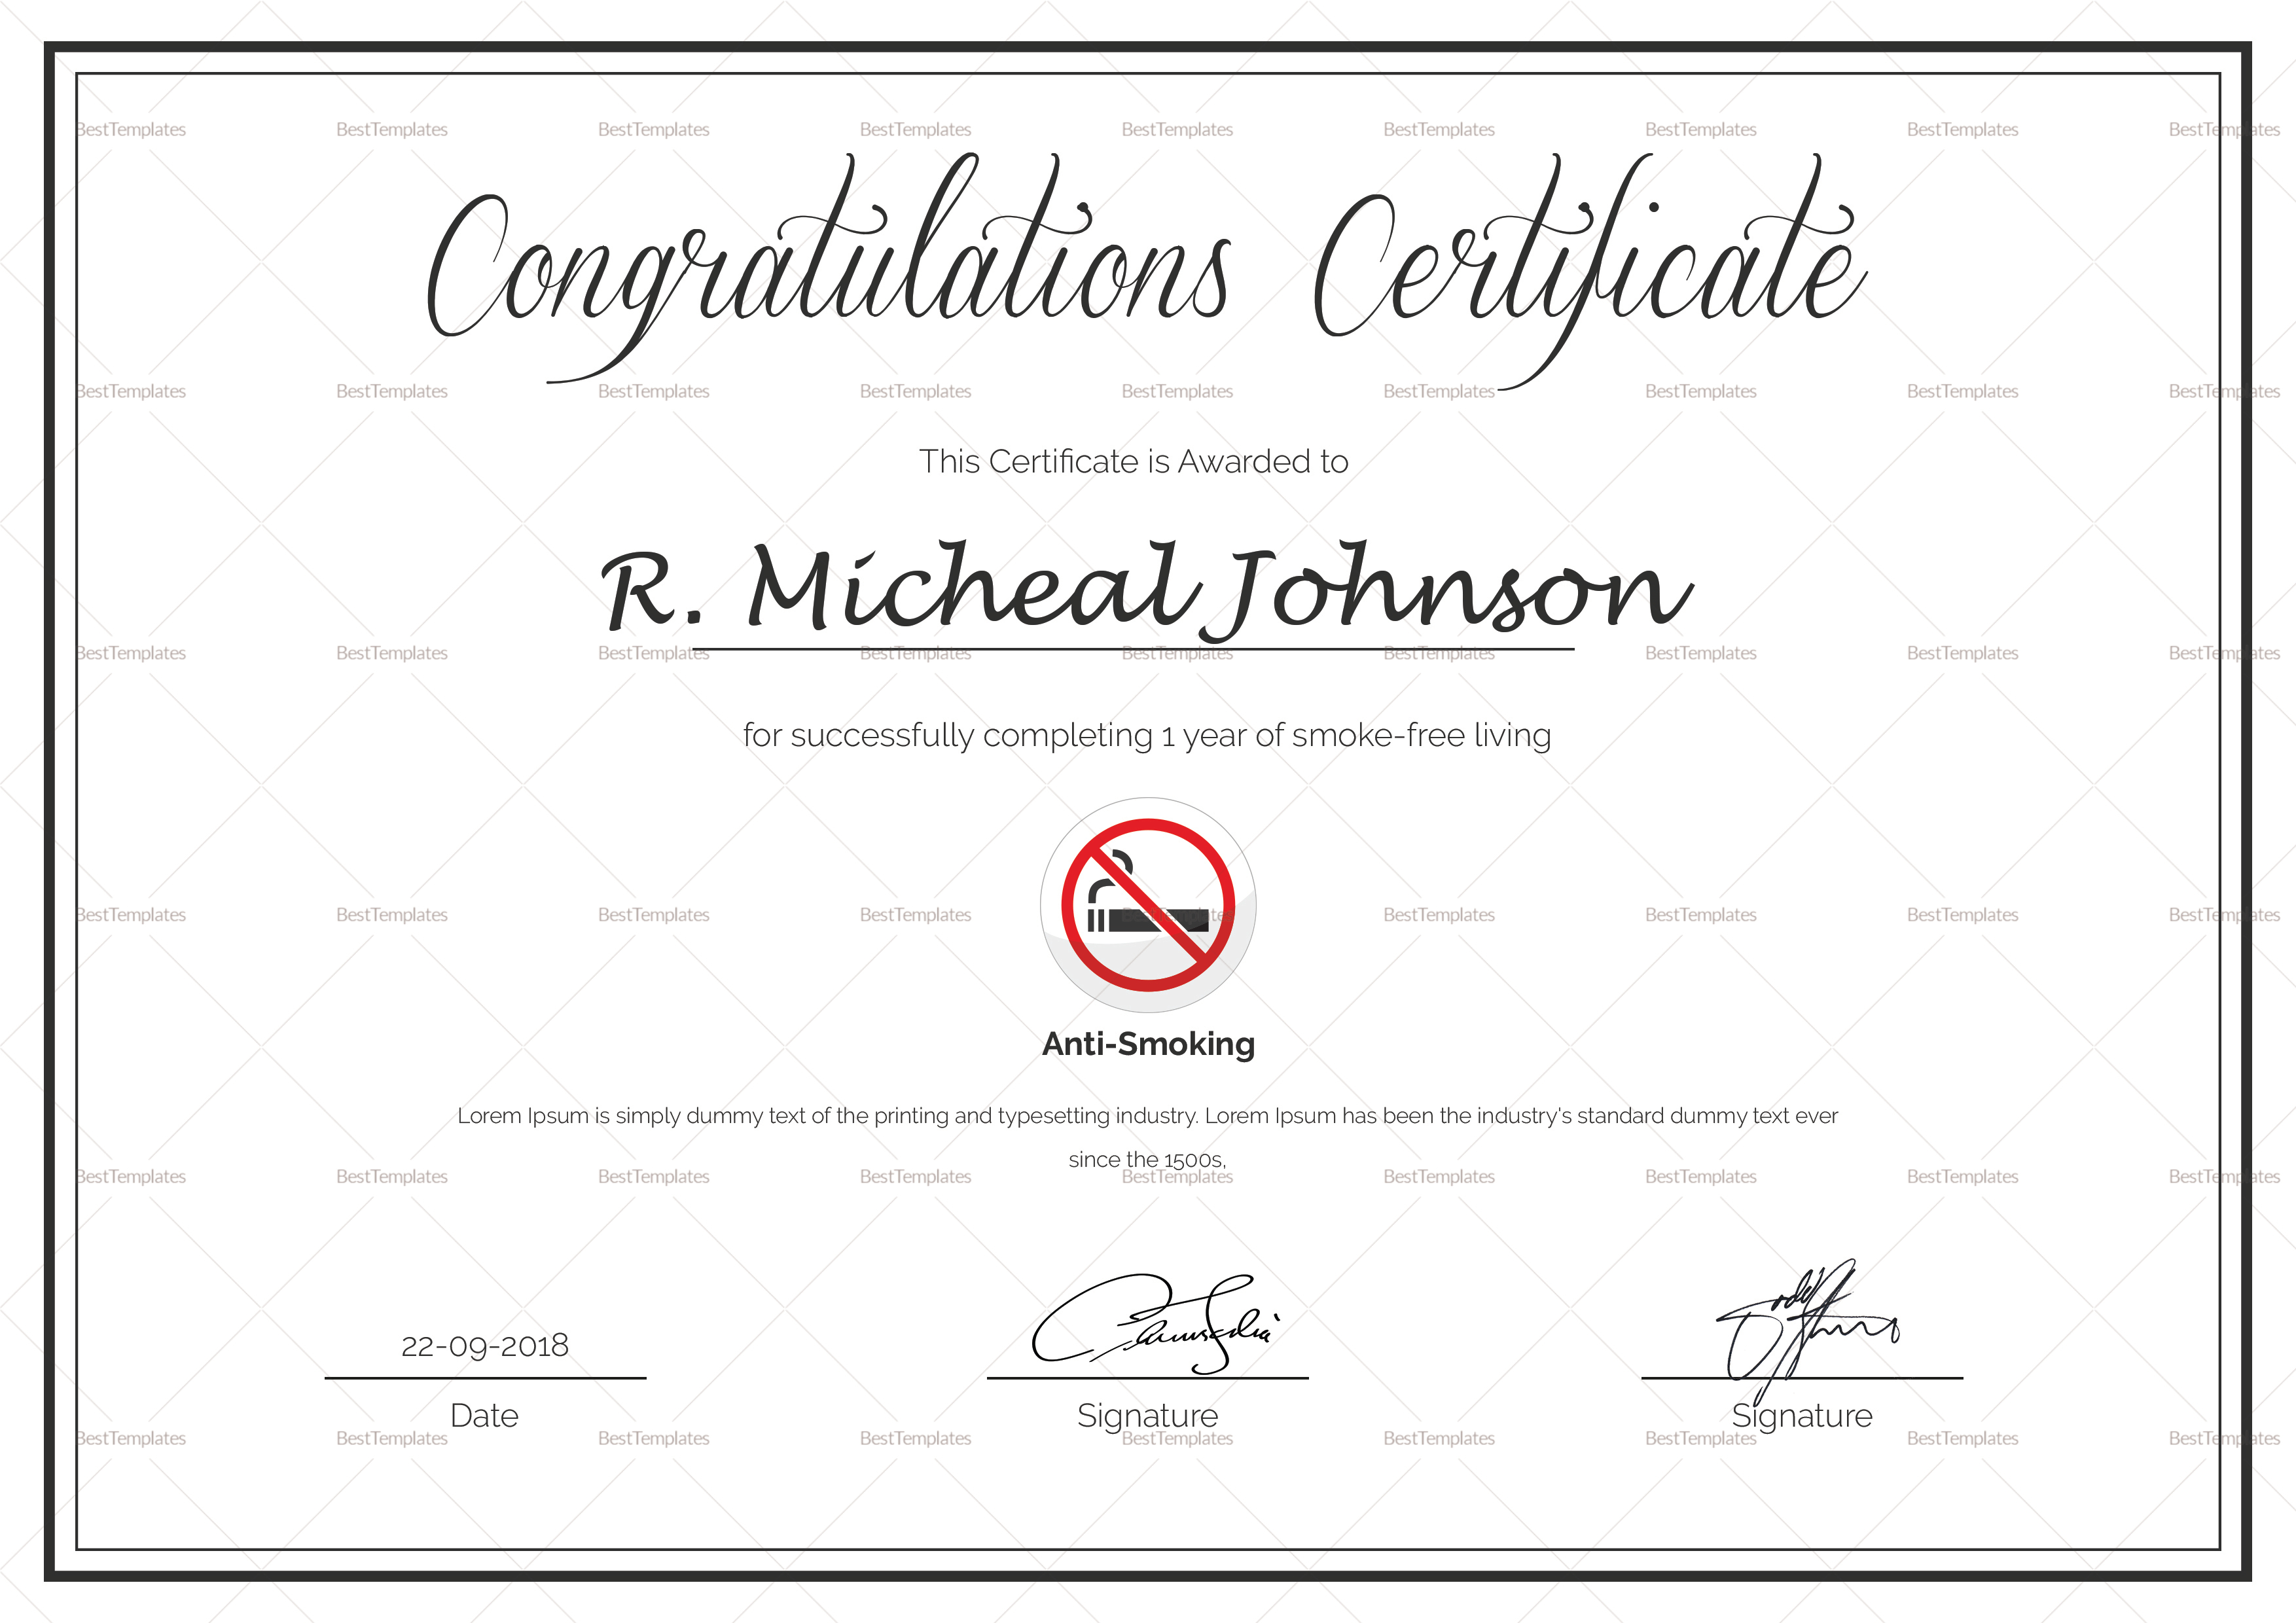 certificate of congratulations for quitting smoking design template